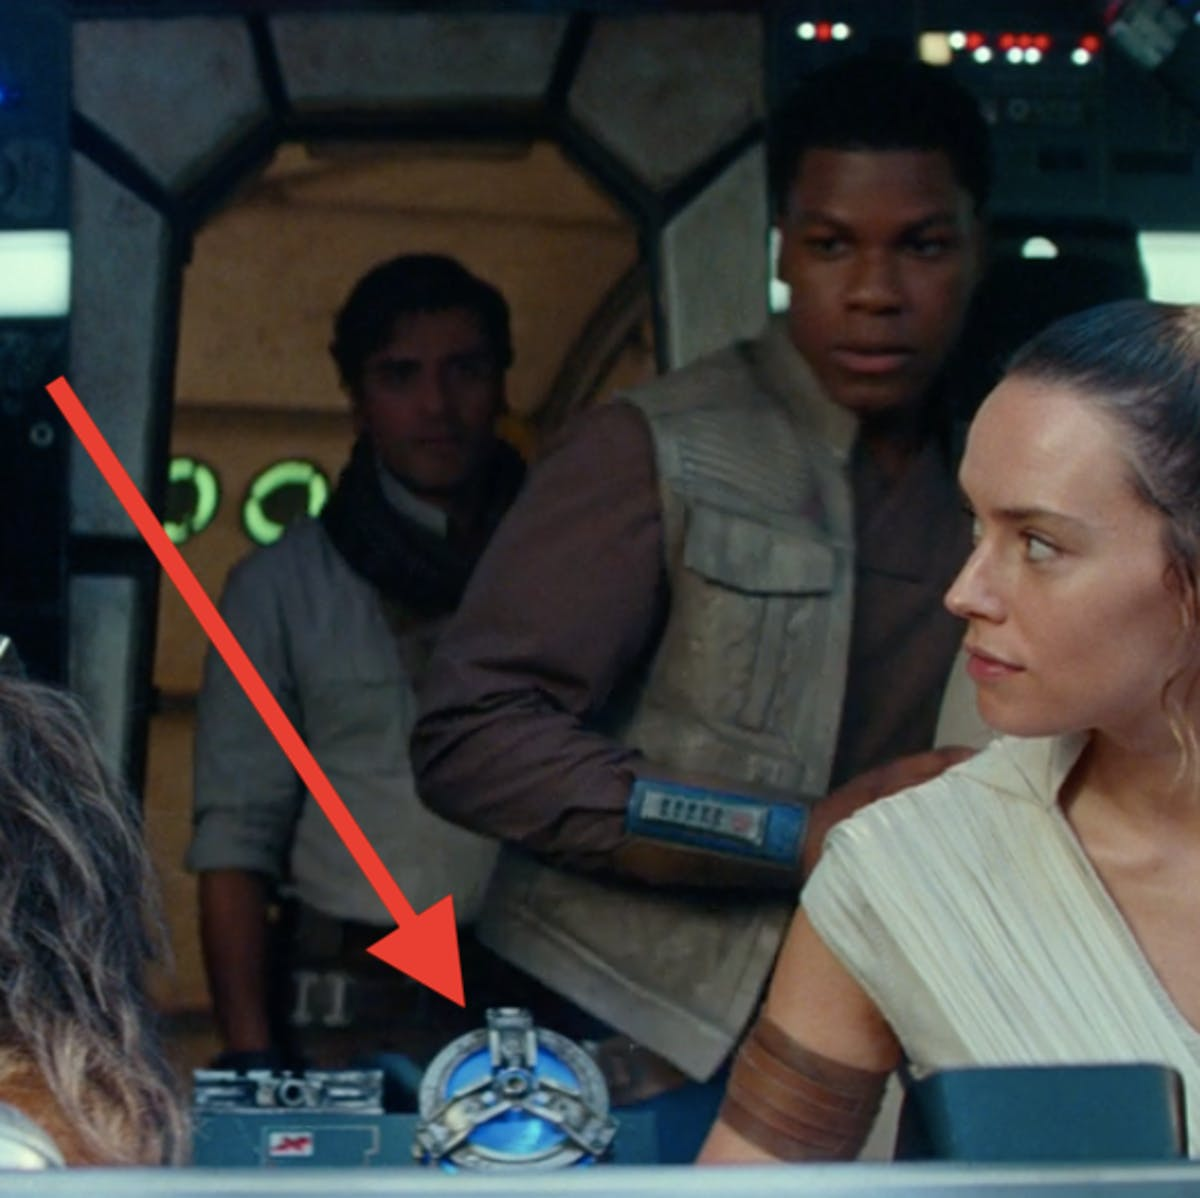 'Rise of Skywalker' trailer screenshot drops a clue about the fate of C-3PO